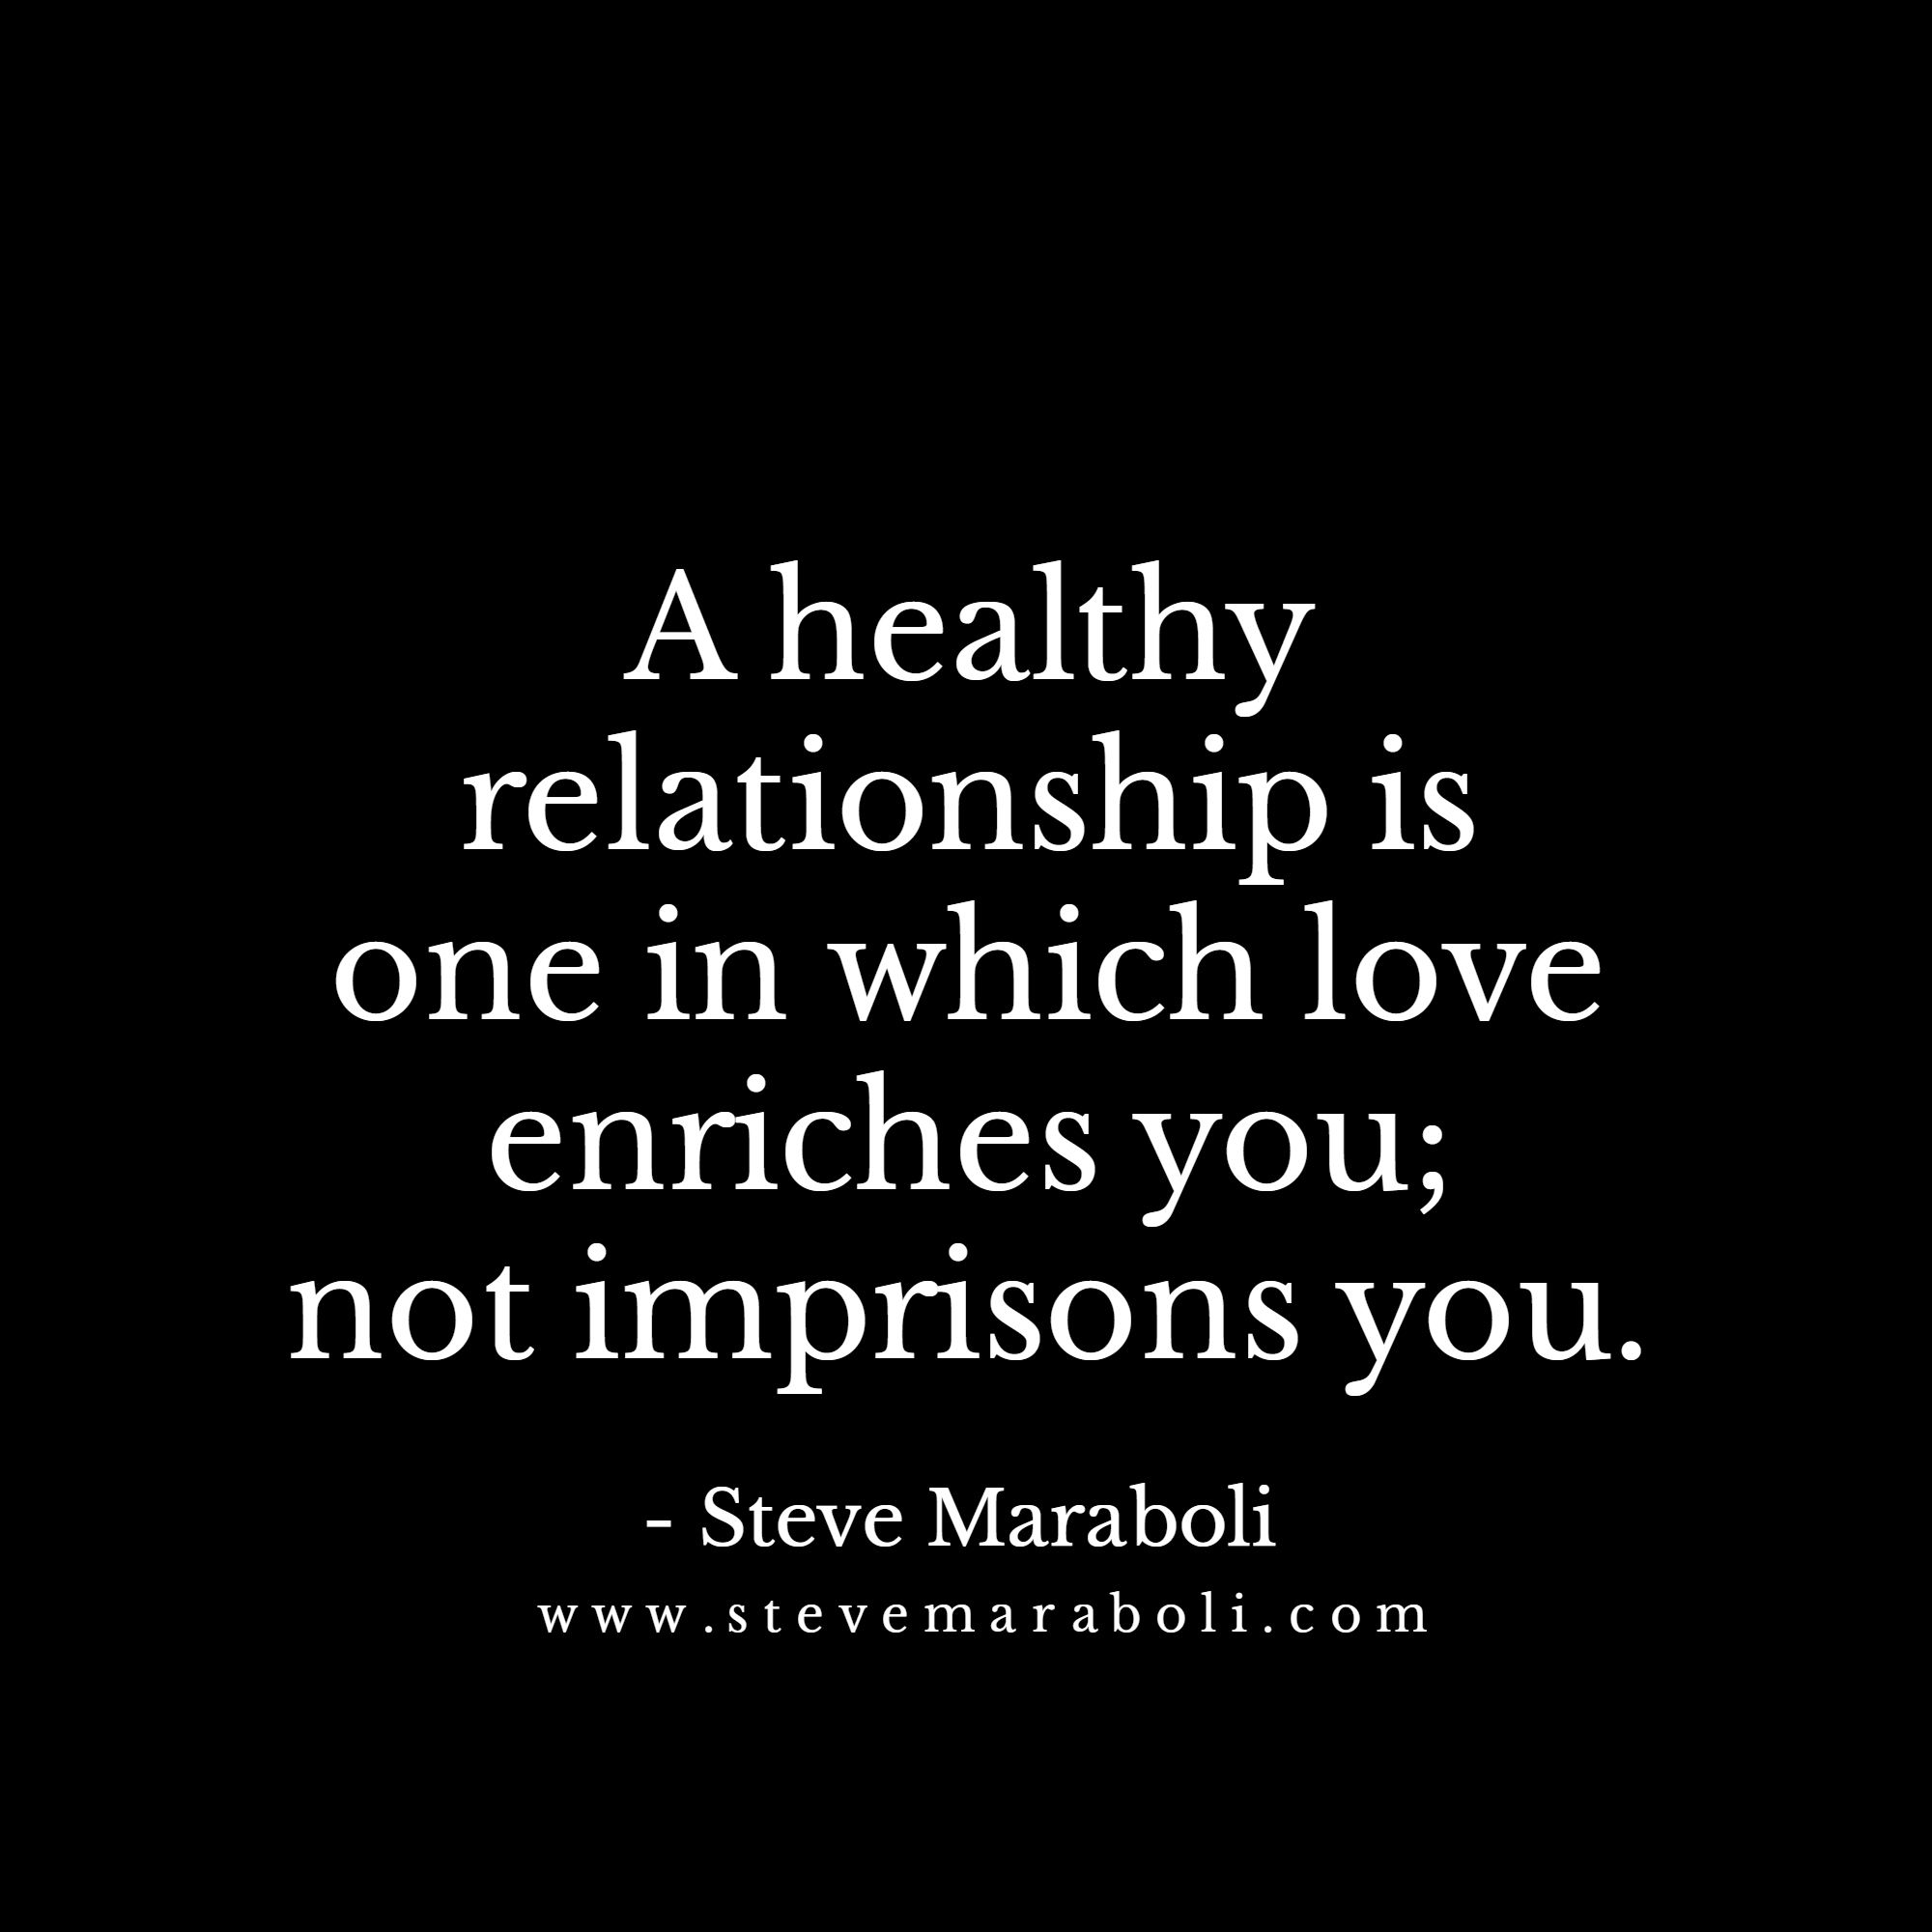 A Healthy Relationship Is One In Which Love Enriches You